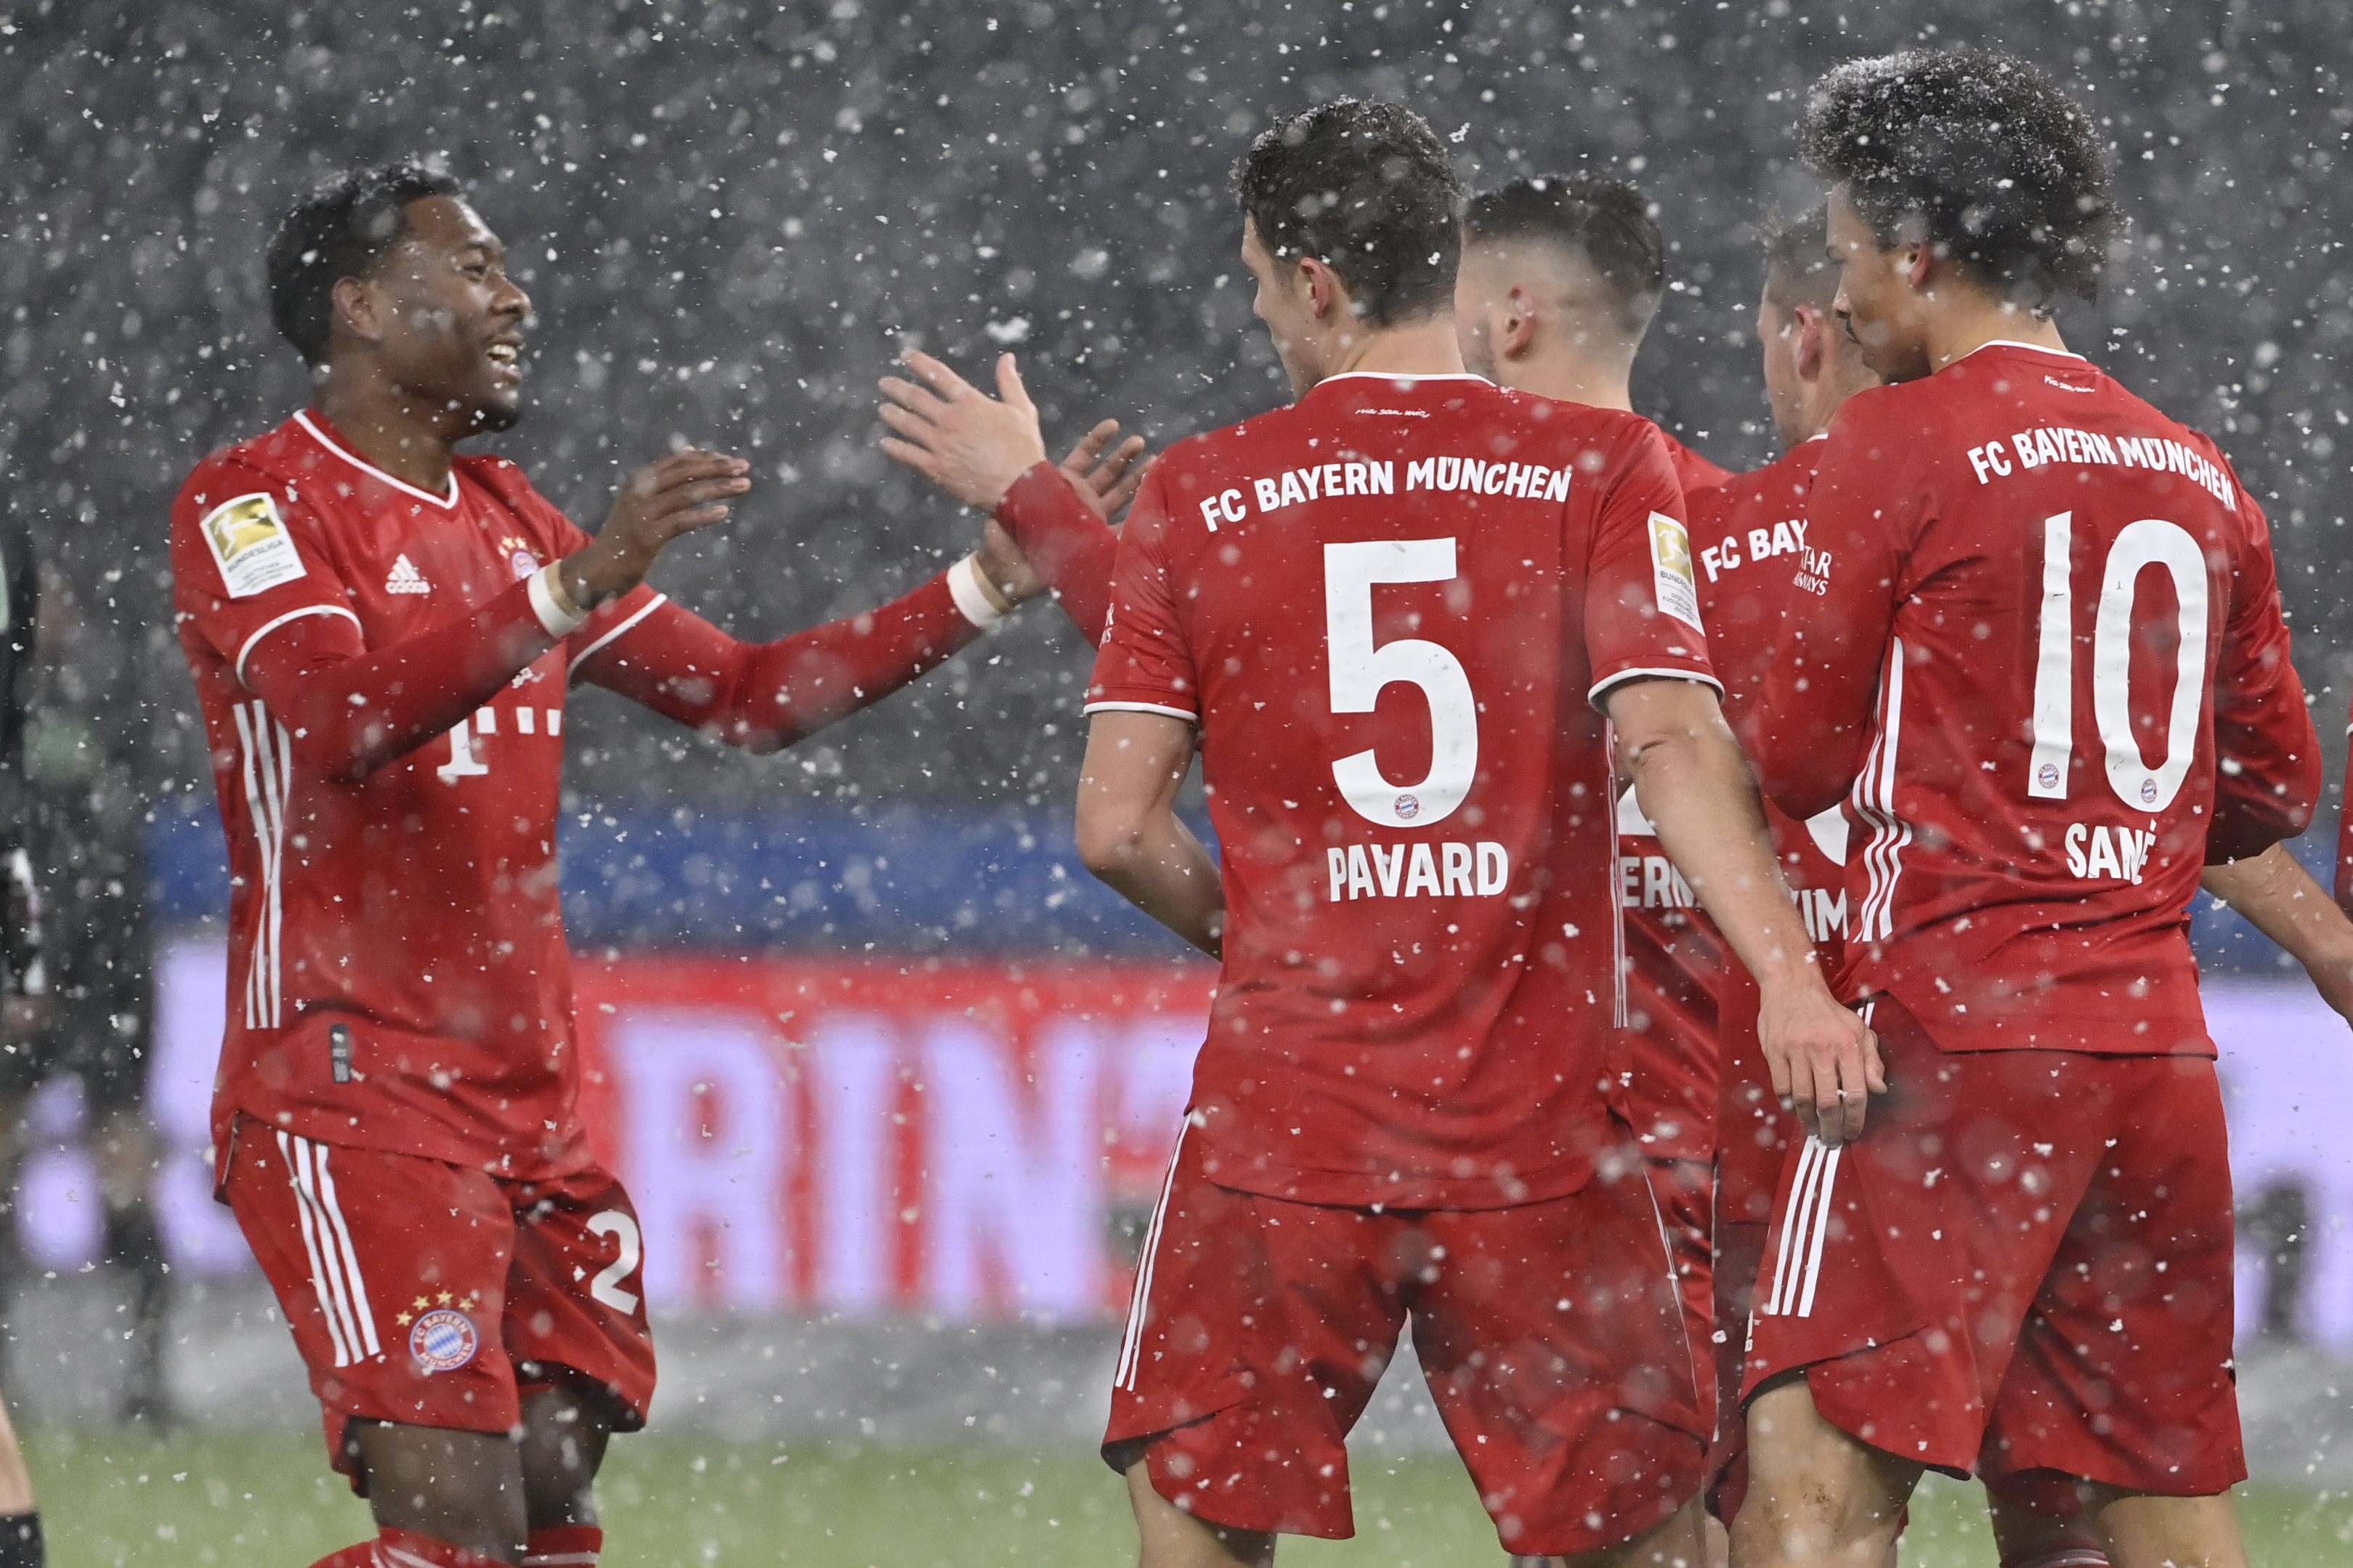 Al Ahly Vs Bayern Munich Free Live Stream 2 8 21 Watch Fifa Club World Cup Semifinal Online En Vivo Time Tv Channel Nj Com